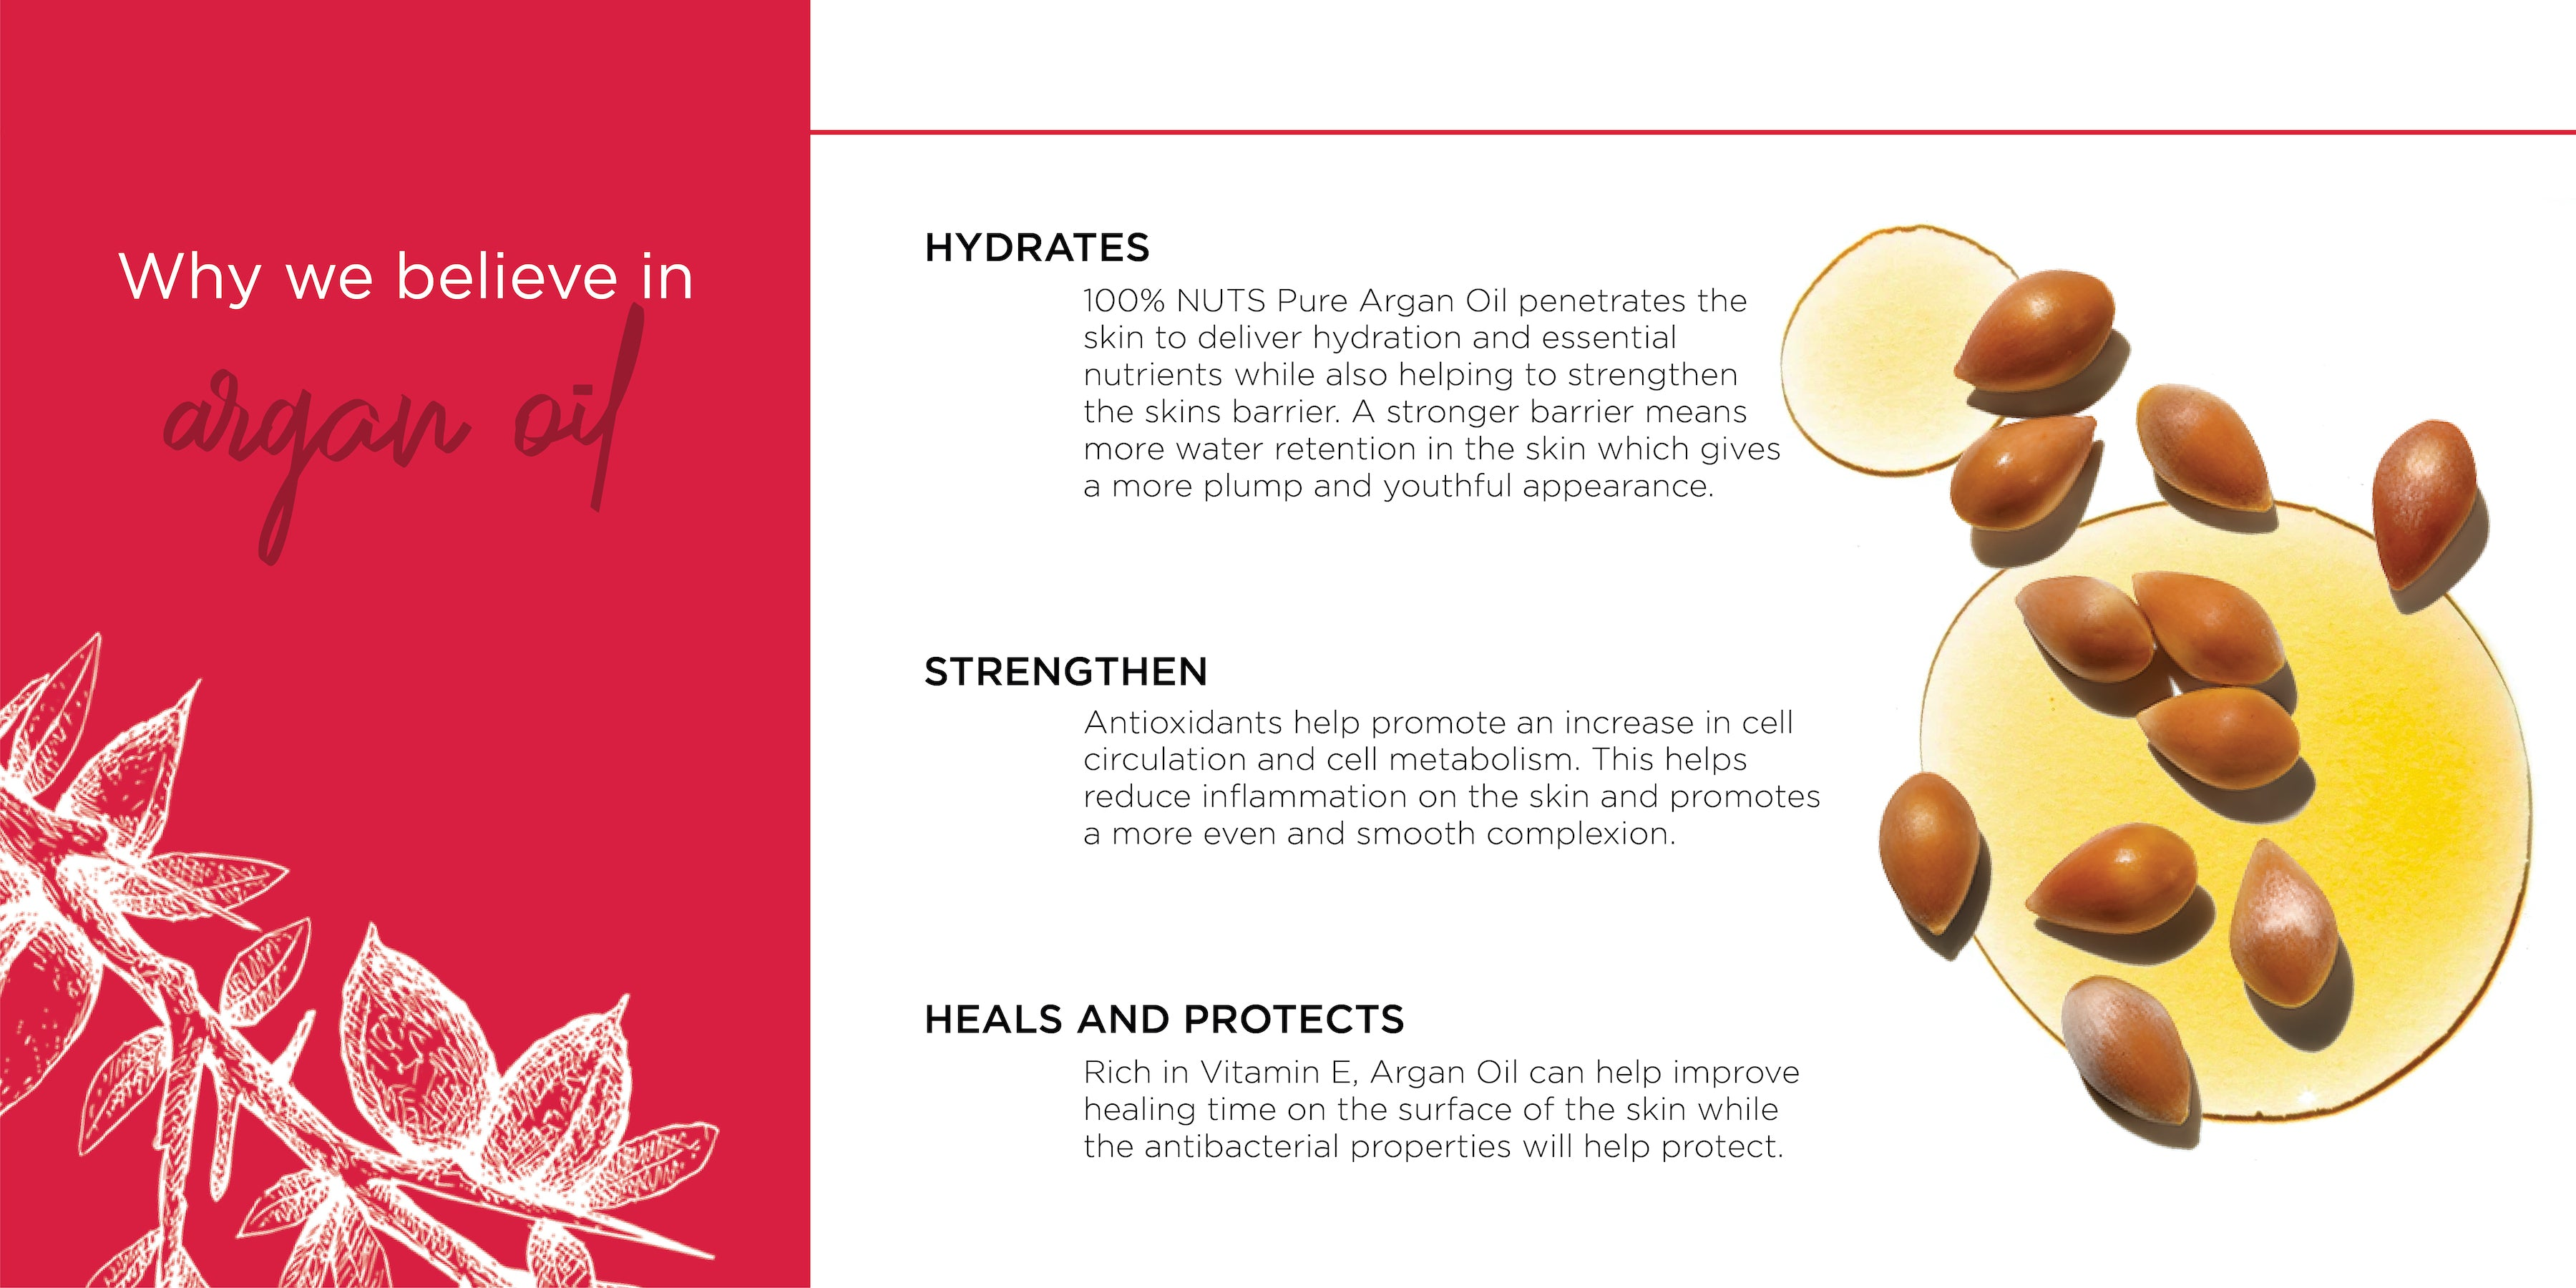 beauty nut pure argan oil | USDA certified organic | cold pressed